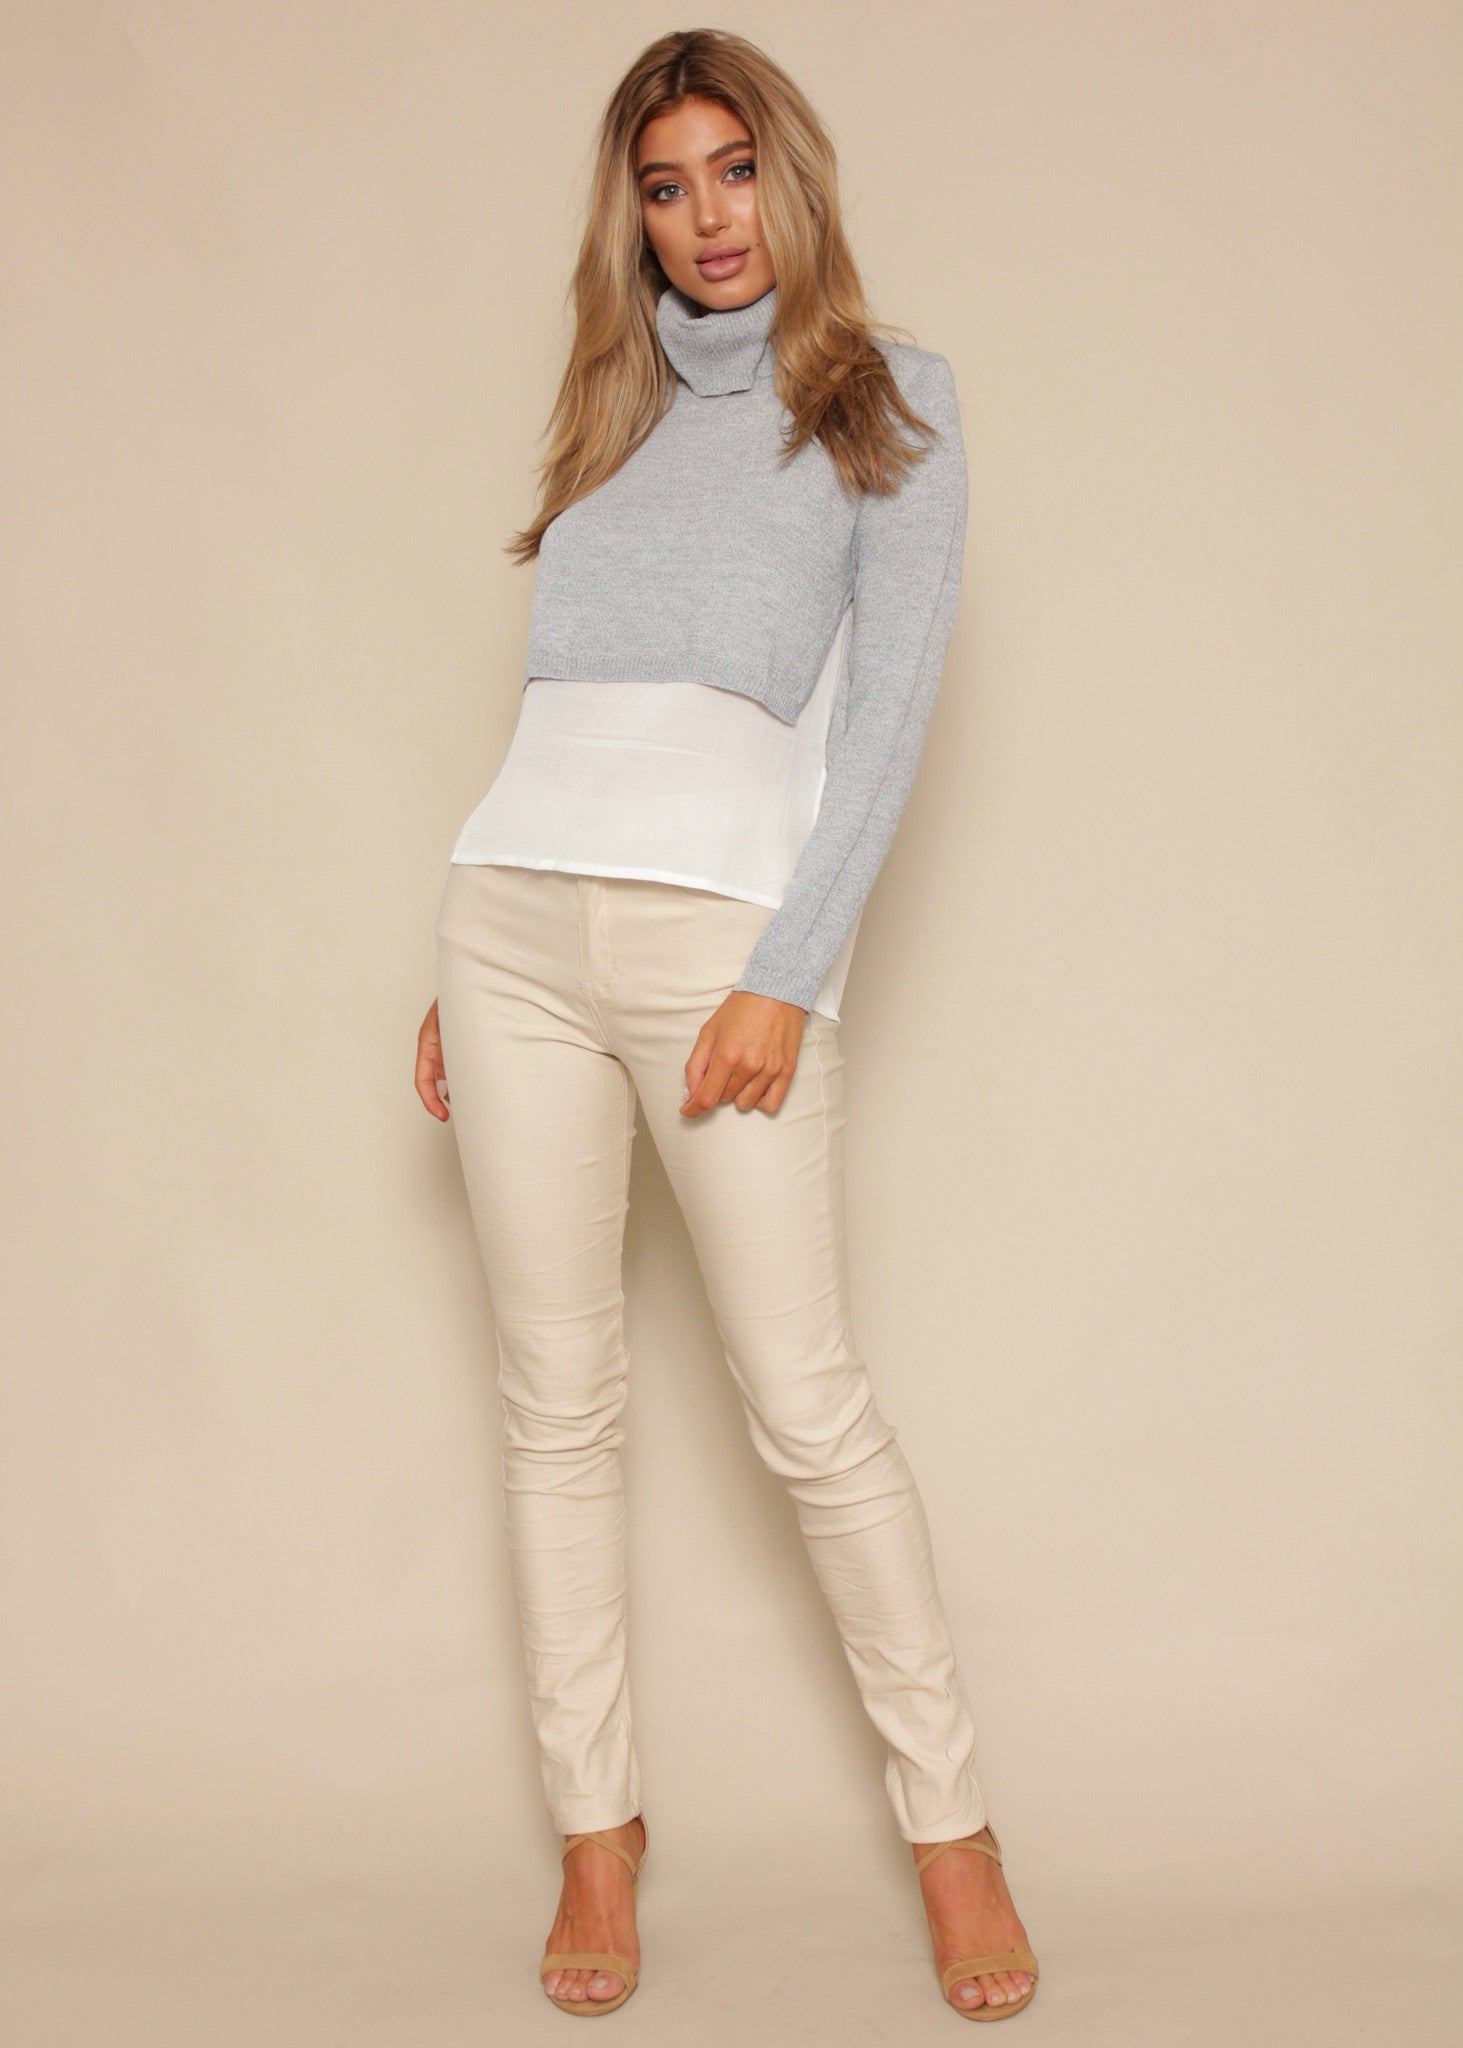 Sun Beam Layered Sweater - Grey Marle